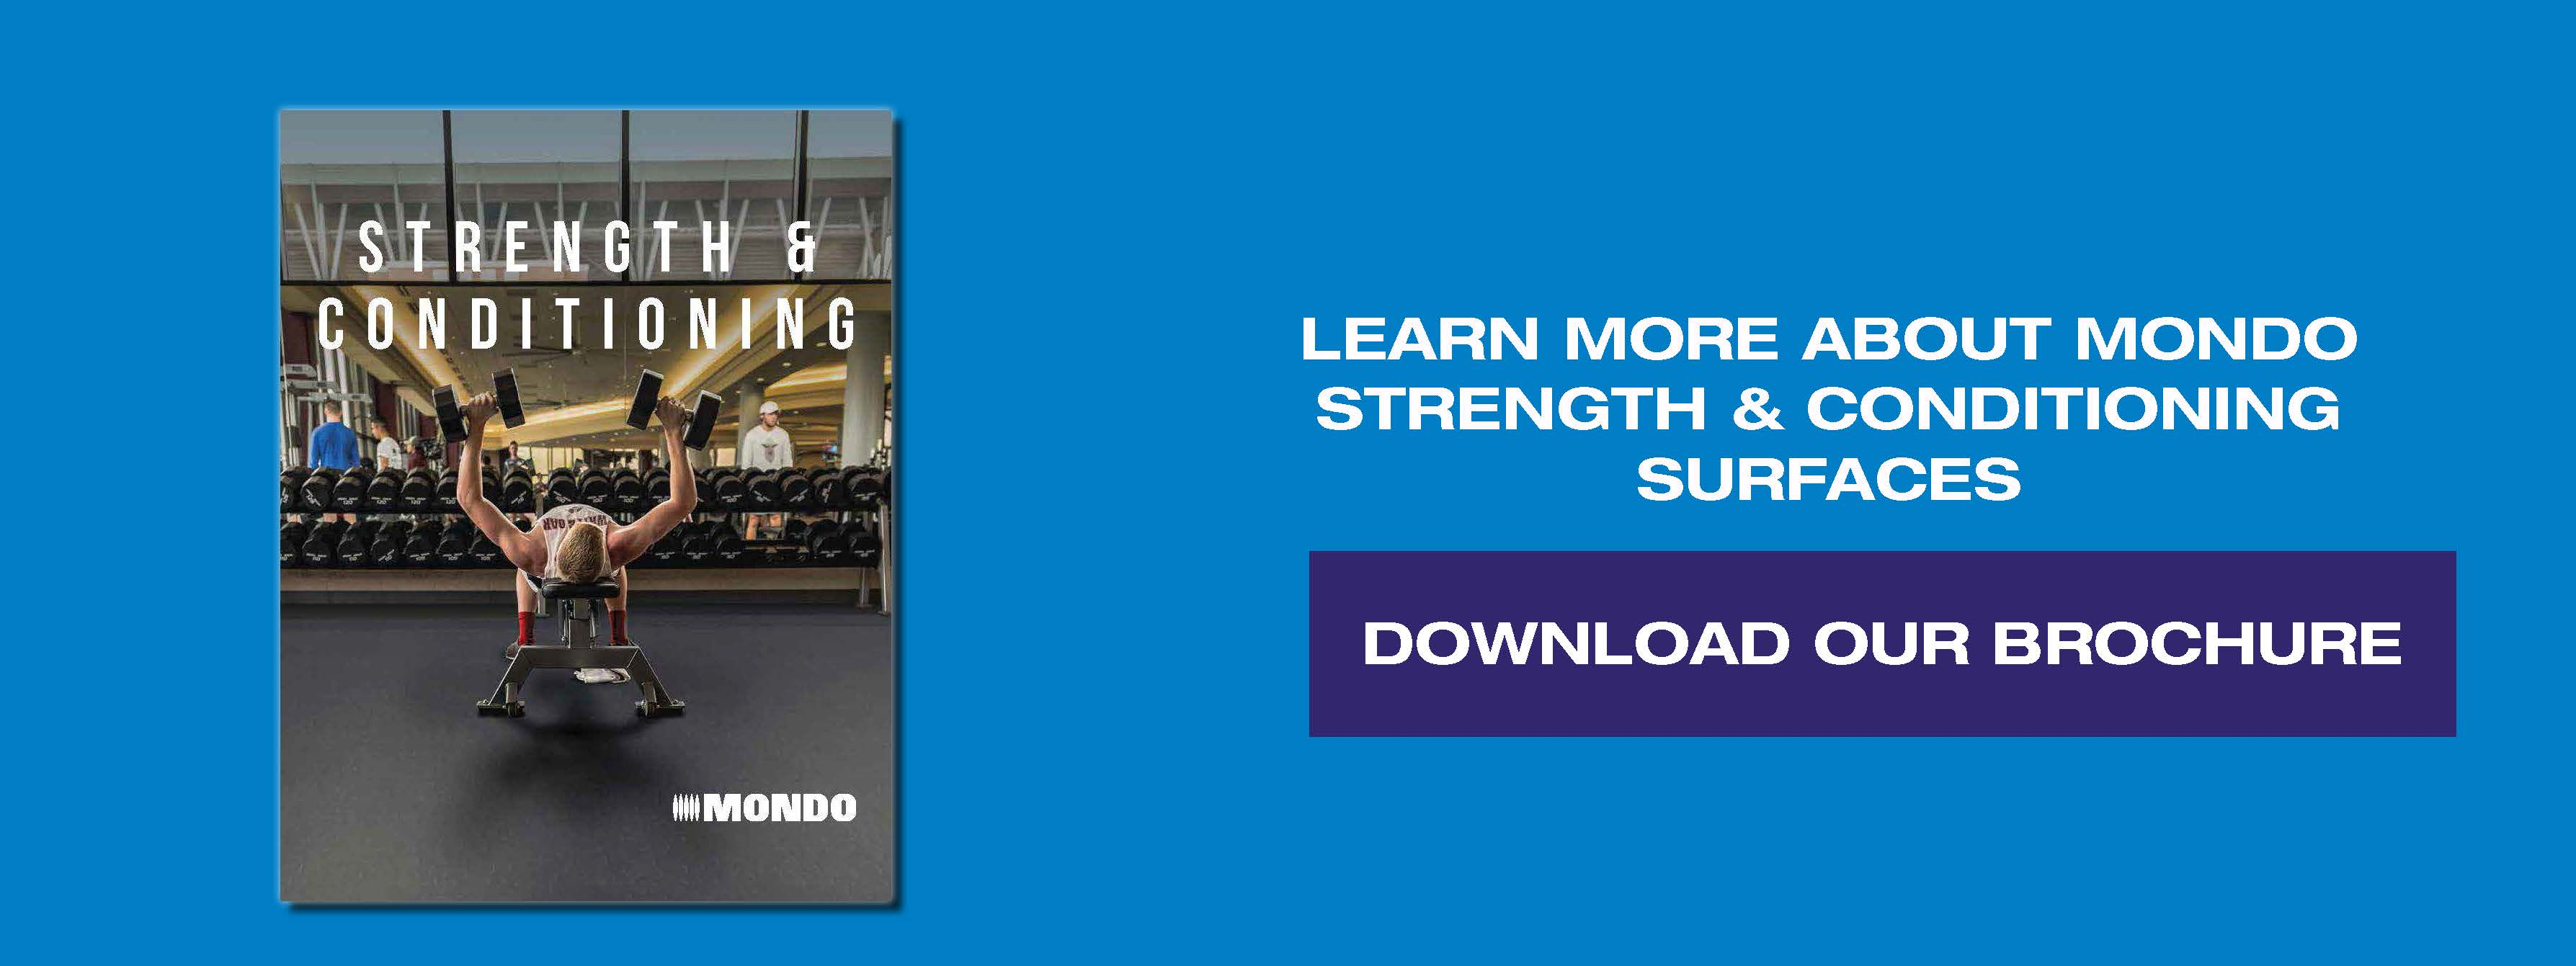 Learn more about Strength & Conditioning Surfaces